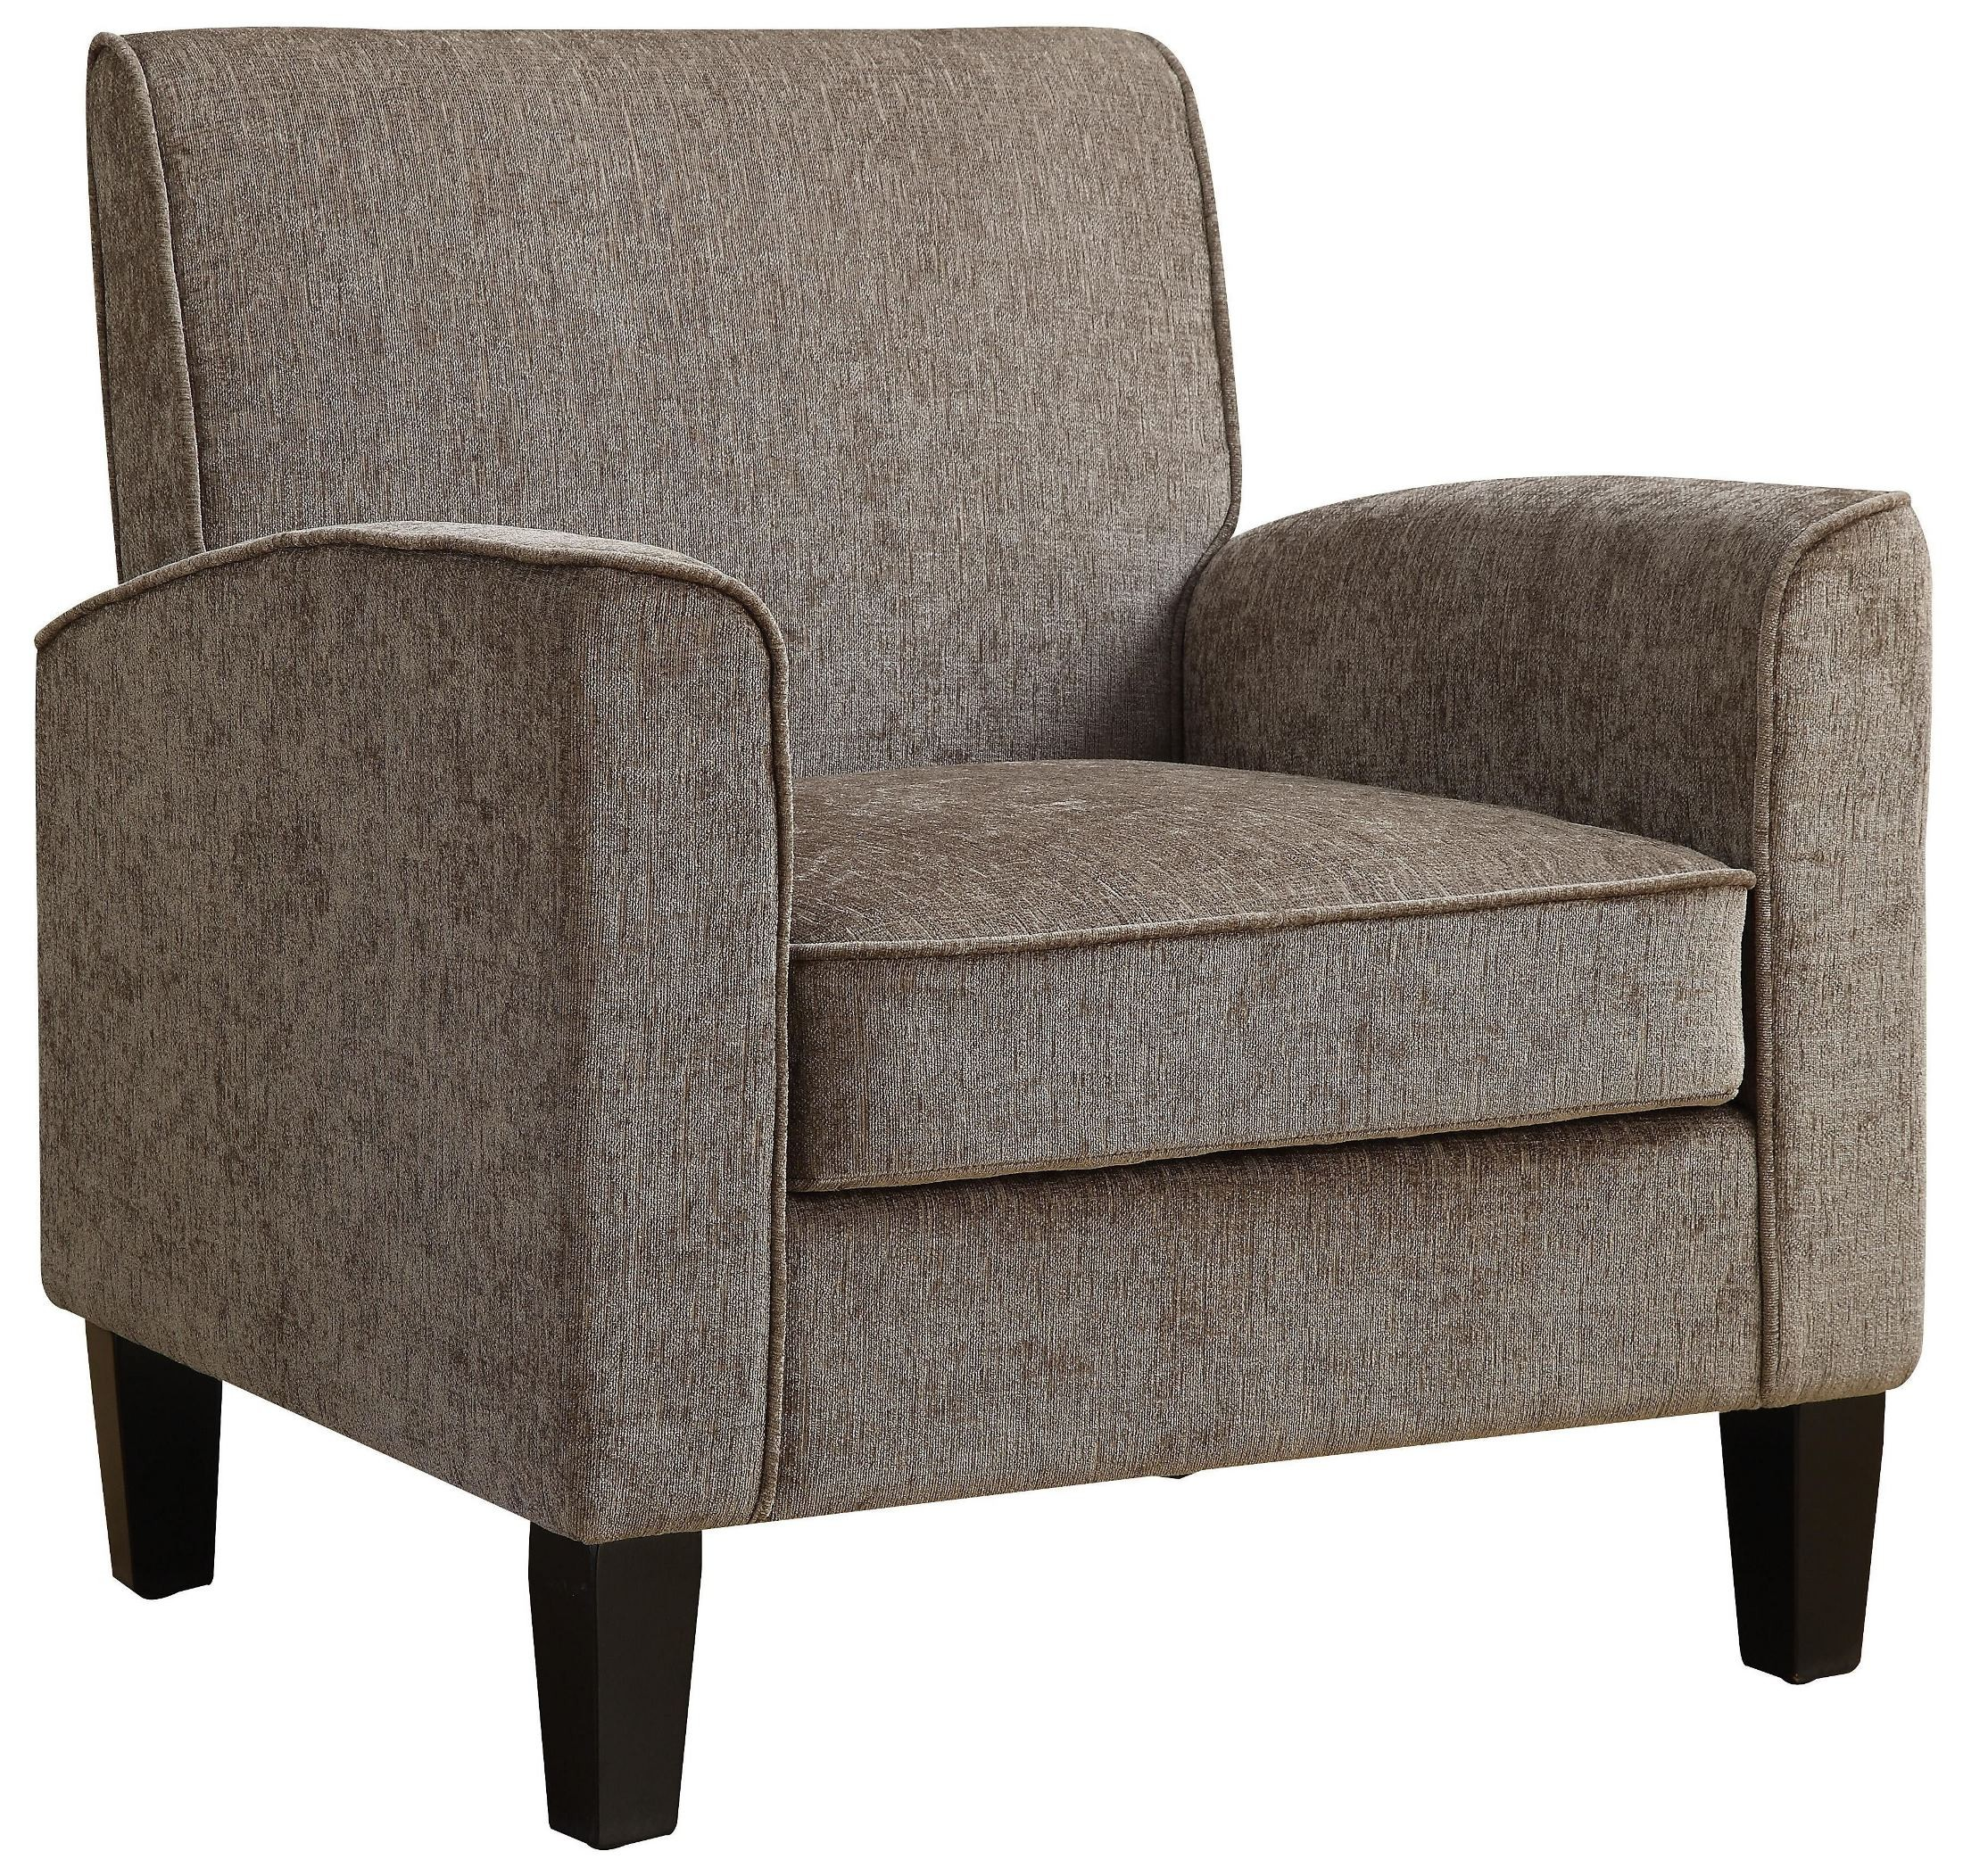 Gray Upholstered Accent Chair From Pulaski